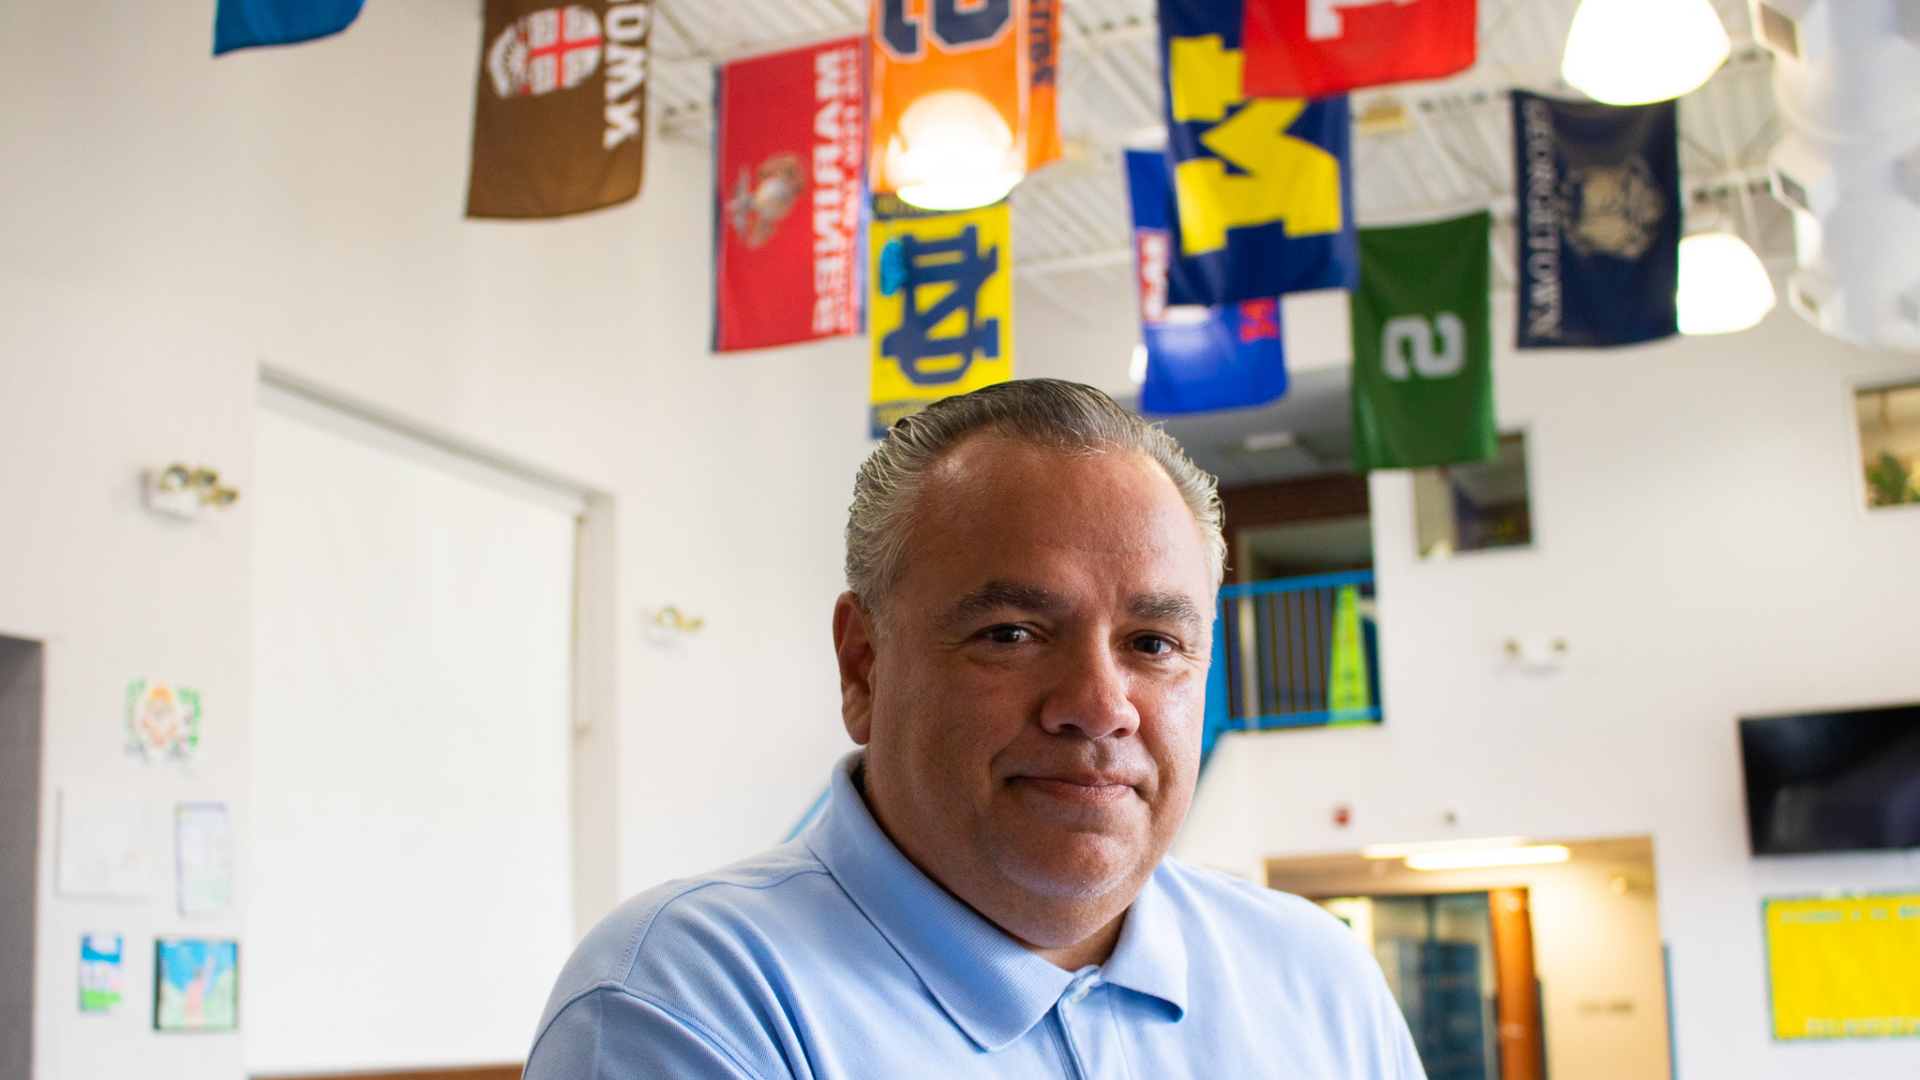 A photo of Cesar Chavez Academy High School Principal, Juan Martinez, posing in the CCA cafeteria, where the flags of many universities hang from the ceiling in the background.